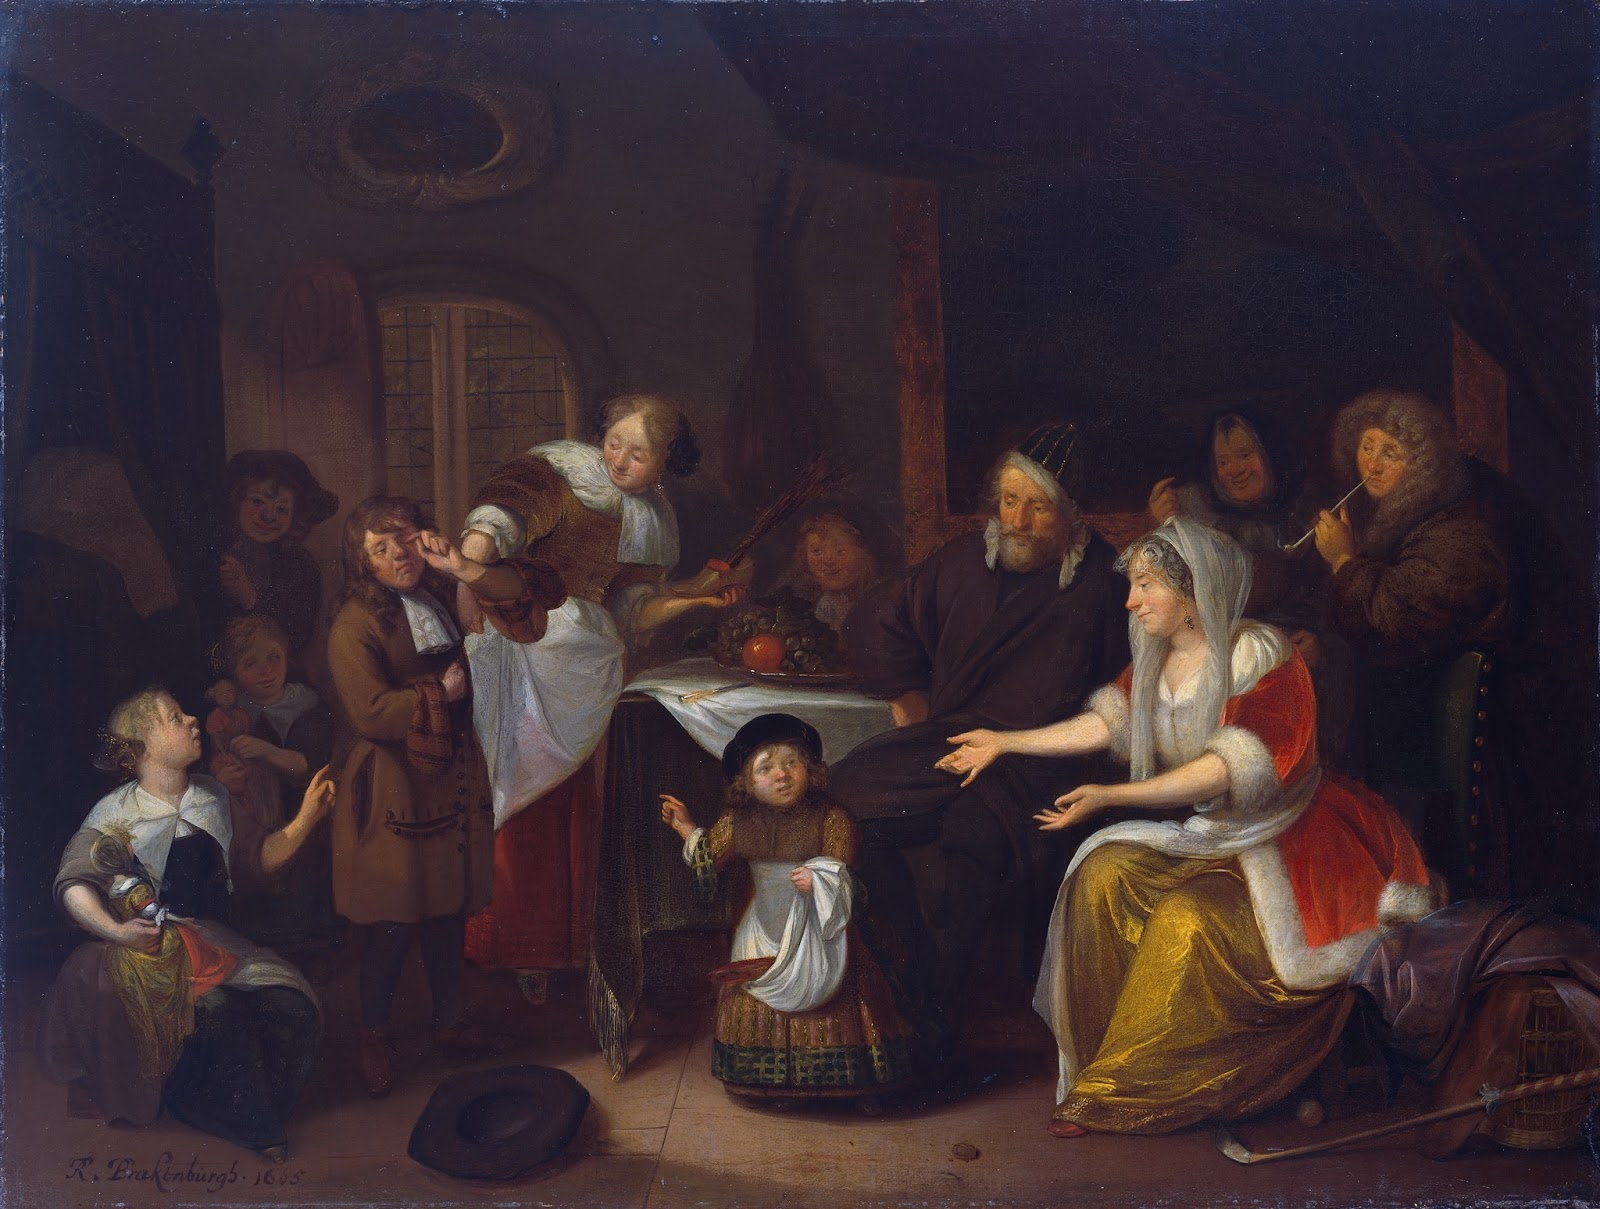 5 R._Brakenburg_Feast_of_St_Nicholas_1685.jpg